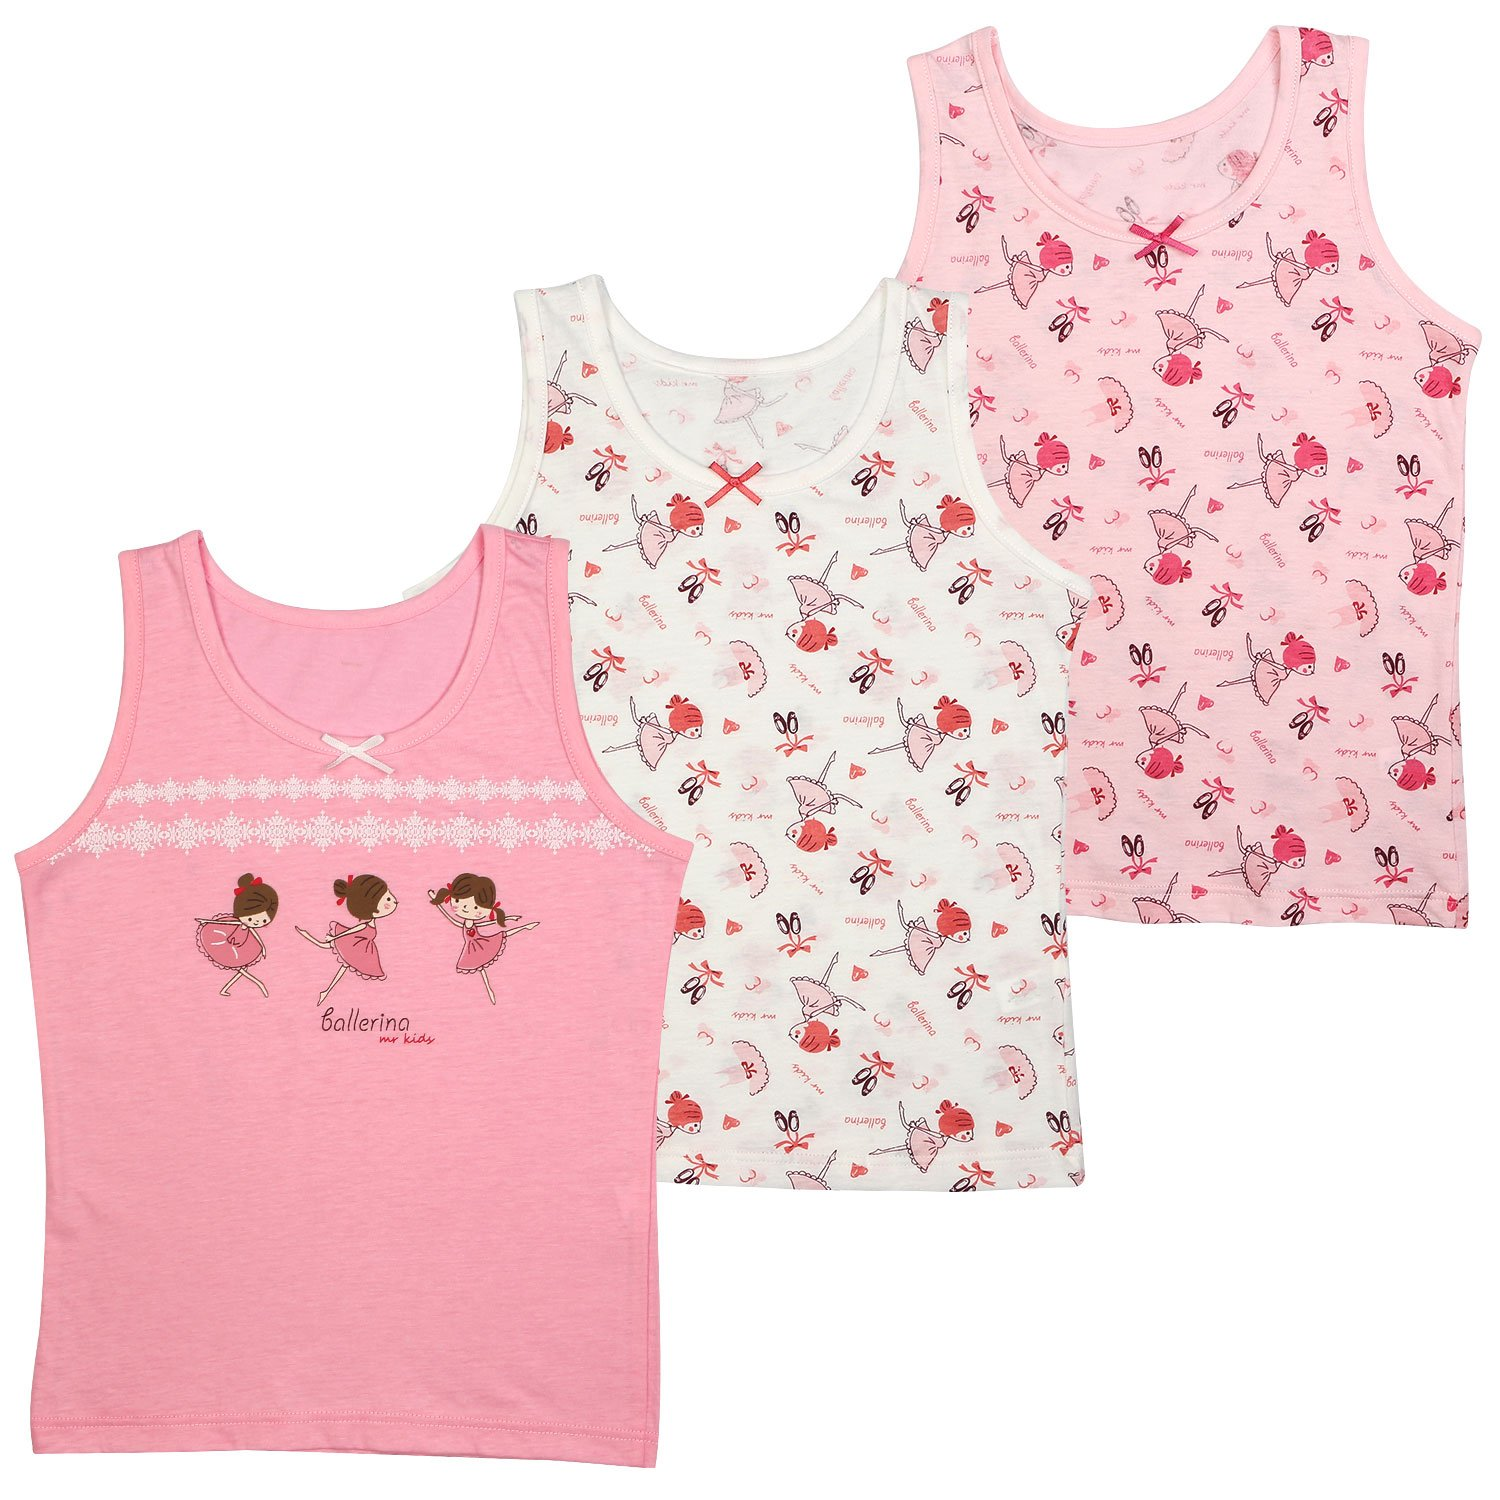 BOOPH Girls Cotton Camis Tanks Top 3 Pack Sleeveless Undershirt for Baby Toddler 1-7Y